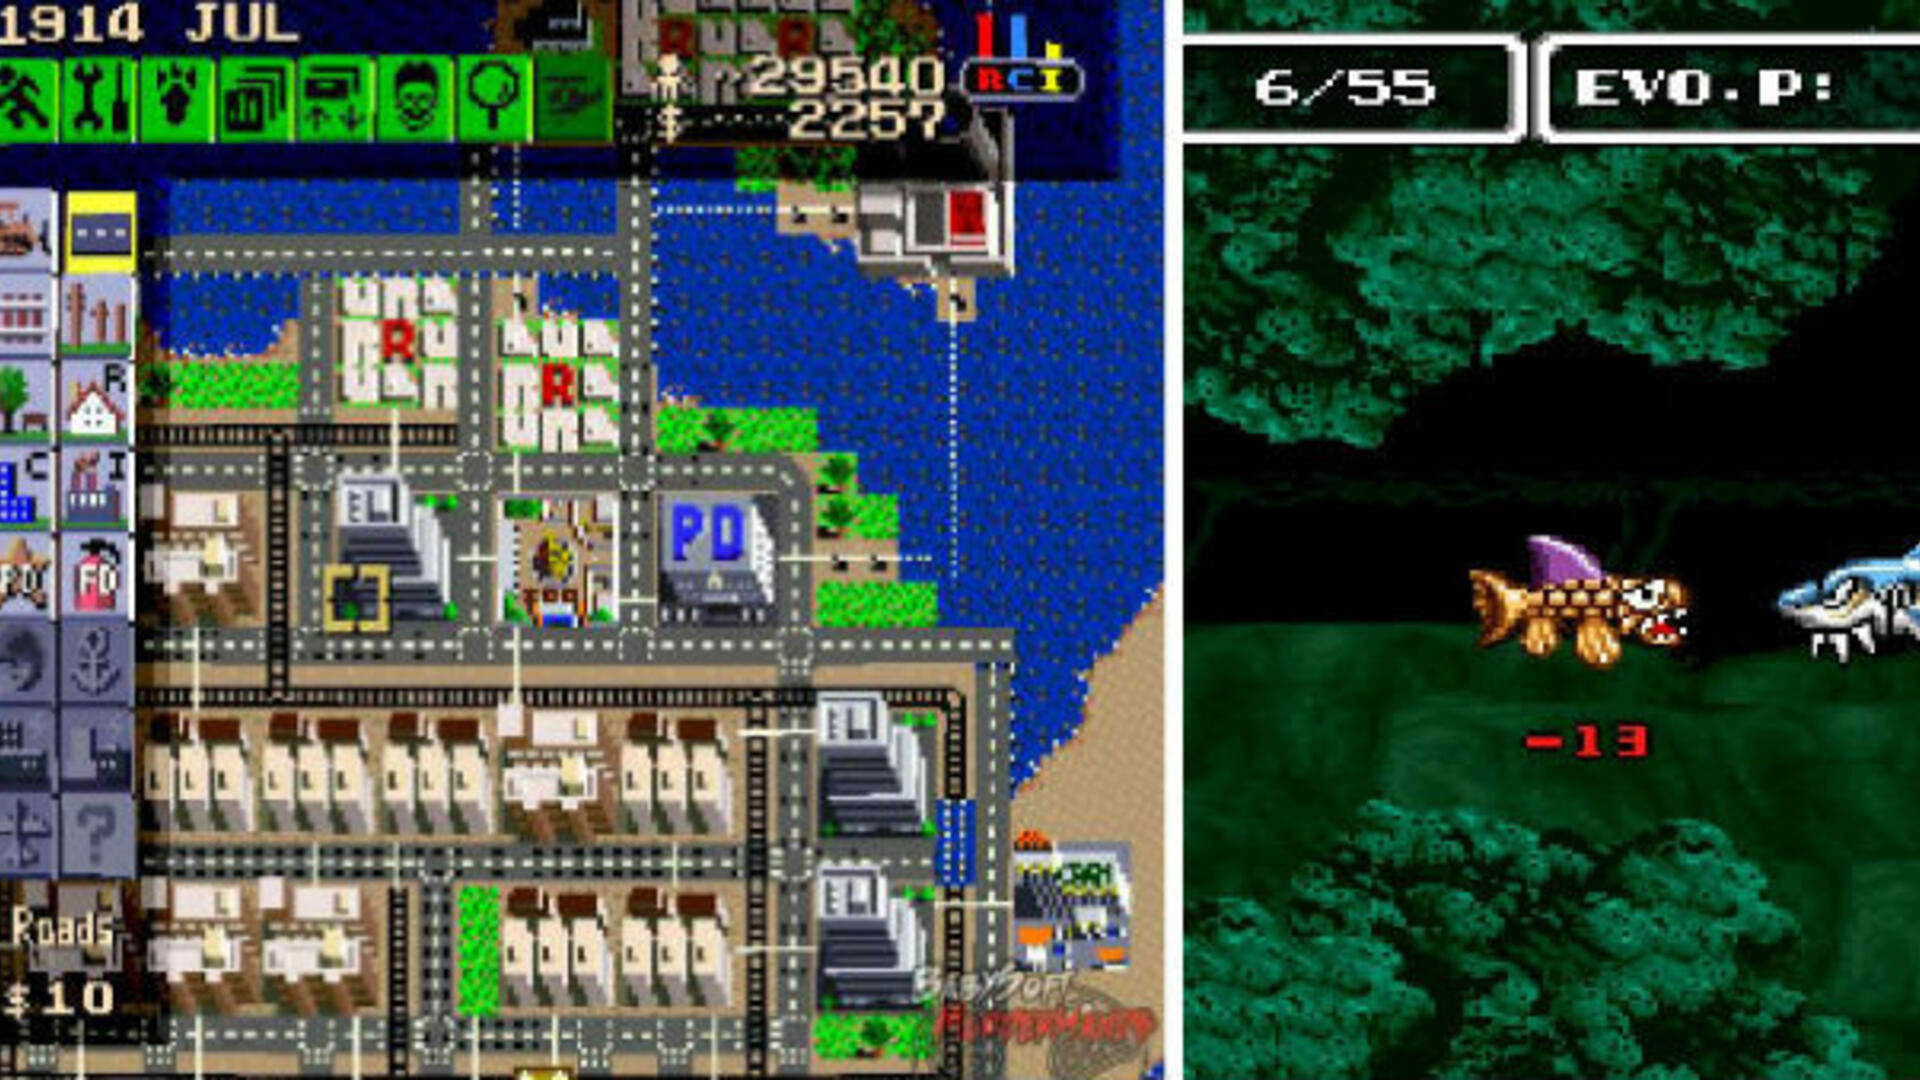 10 Games We Can't Help but Notice Are Missing from the SNES